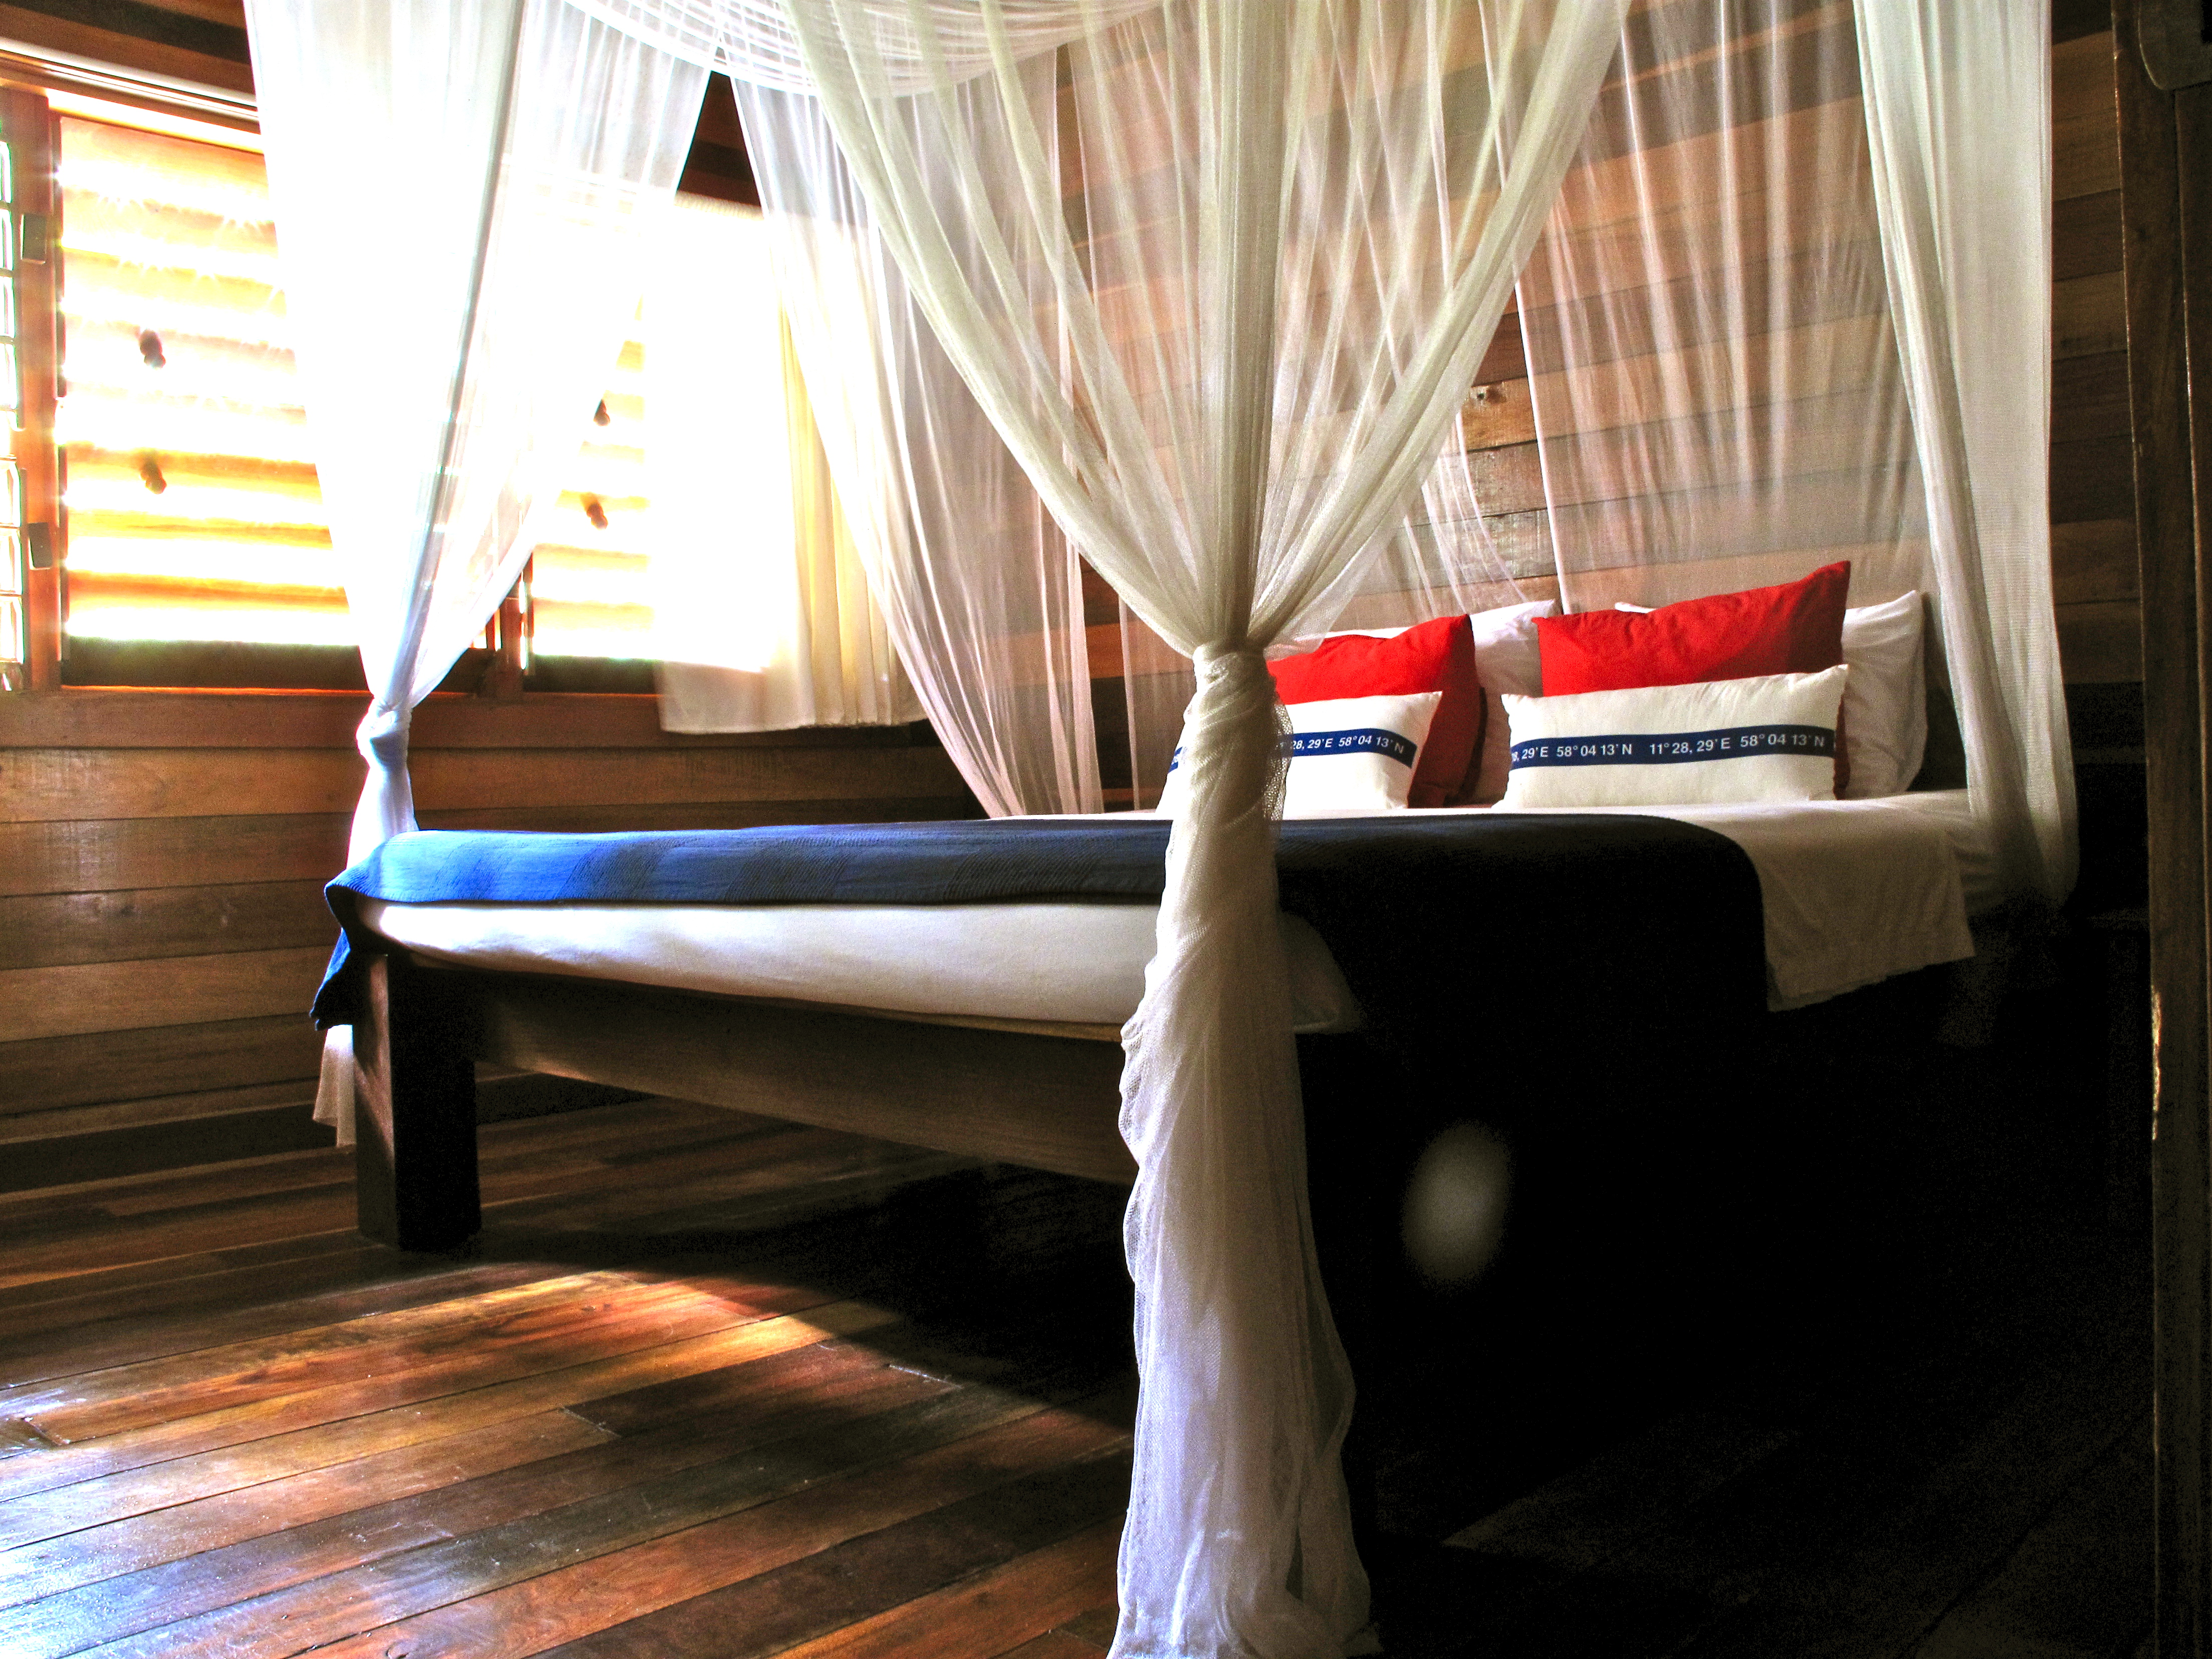 Chac, Huracan Diving Lodge guest room with King Size Bed, Lightouse Reef Atoll